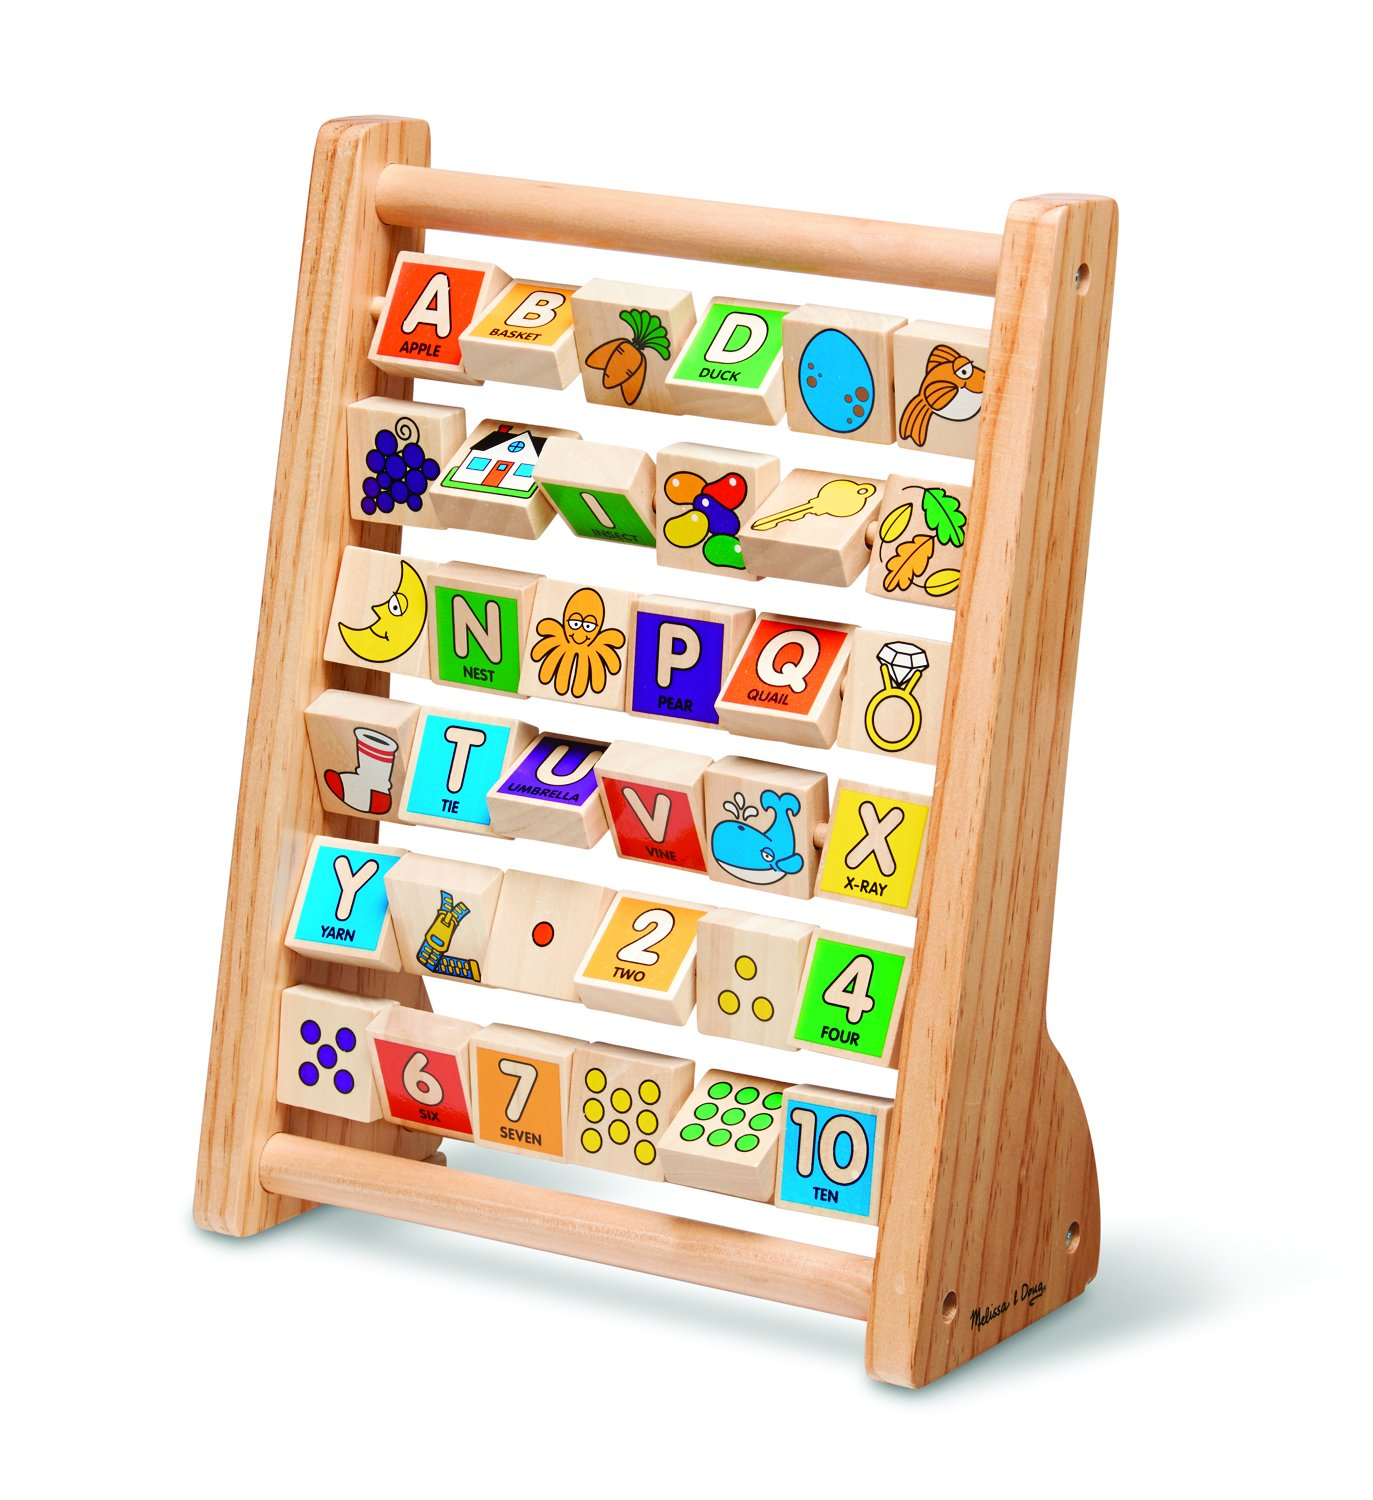 Melissa & Doug ABC-123 Abacus - Classic Wooden Educational Toy With 36 Letter and Number Tiles 9273